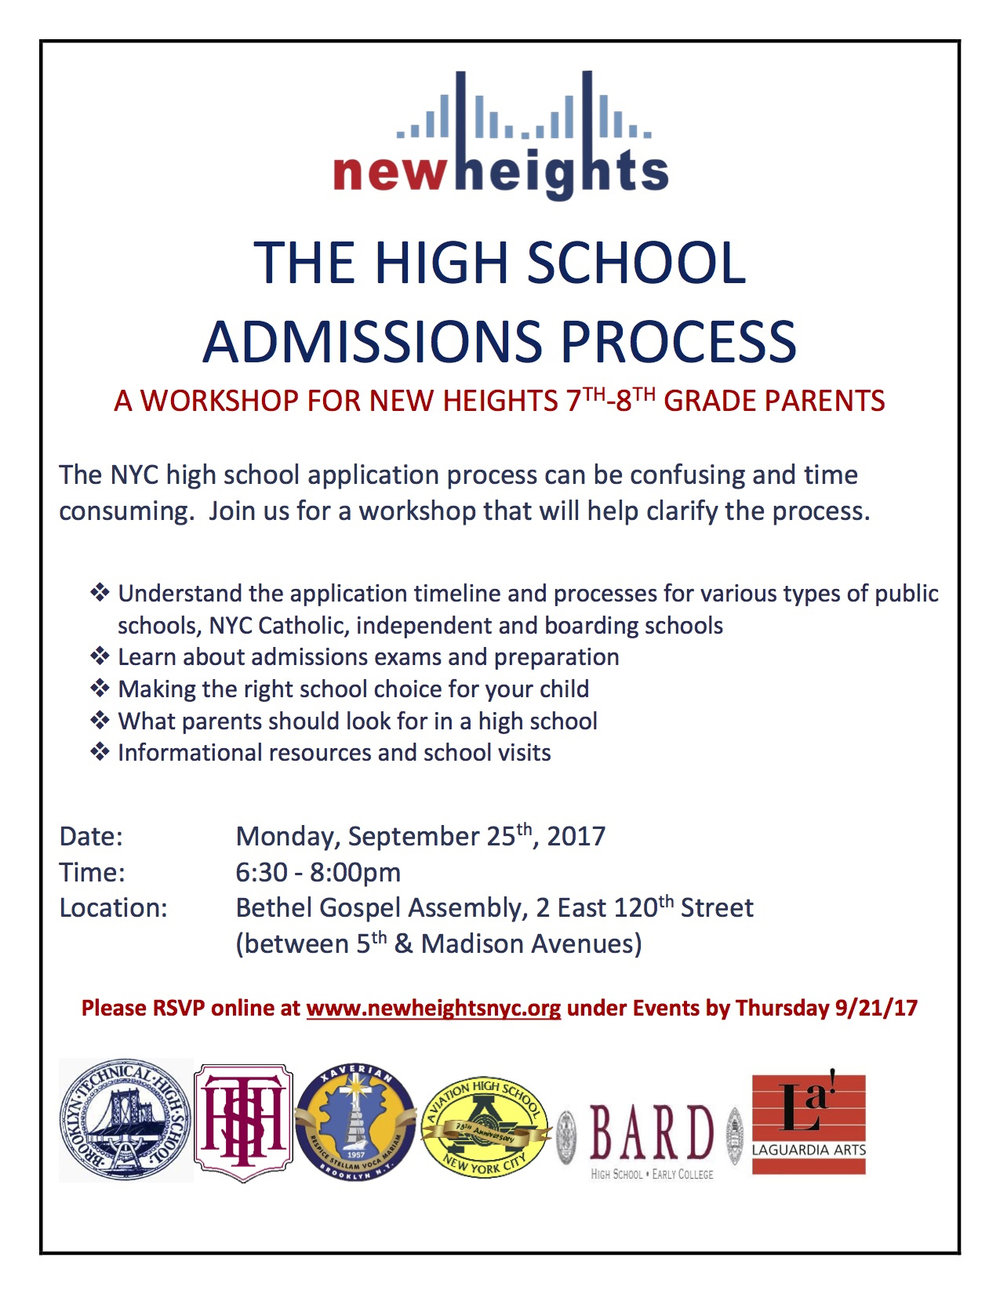 High School Admission Workshop Flyer.jpg